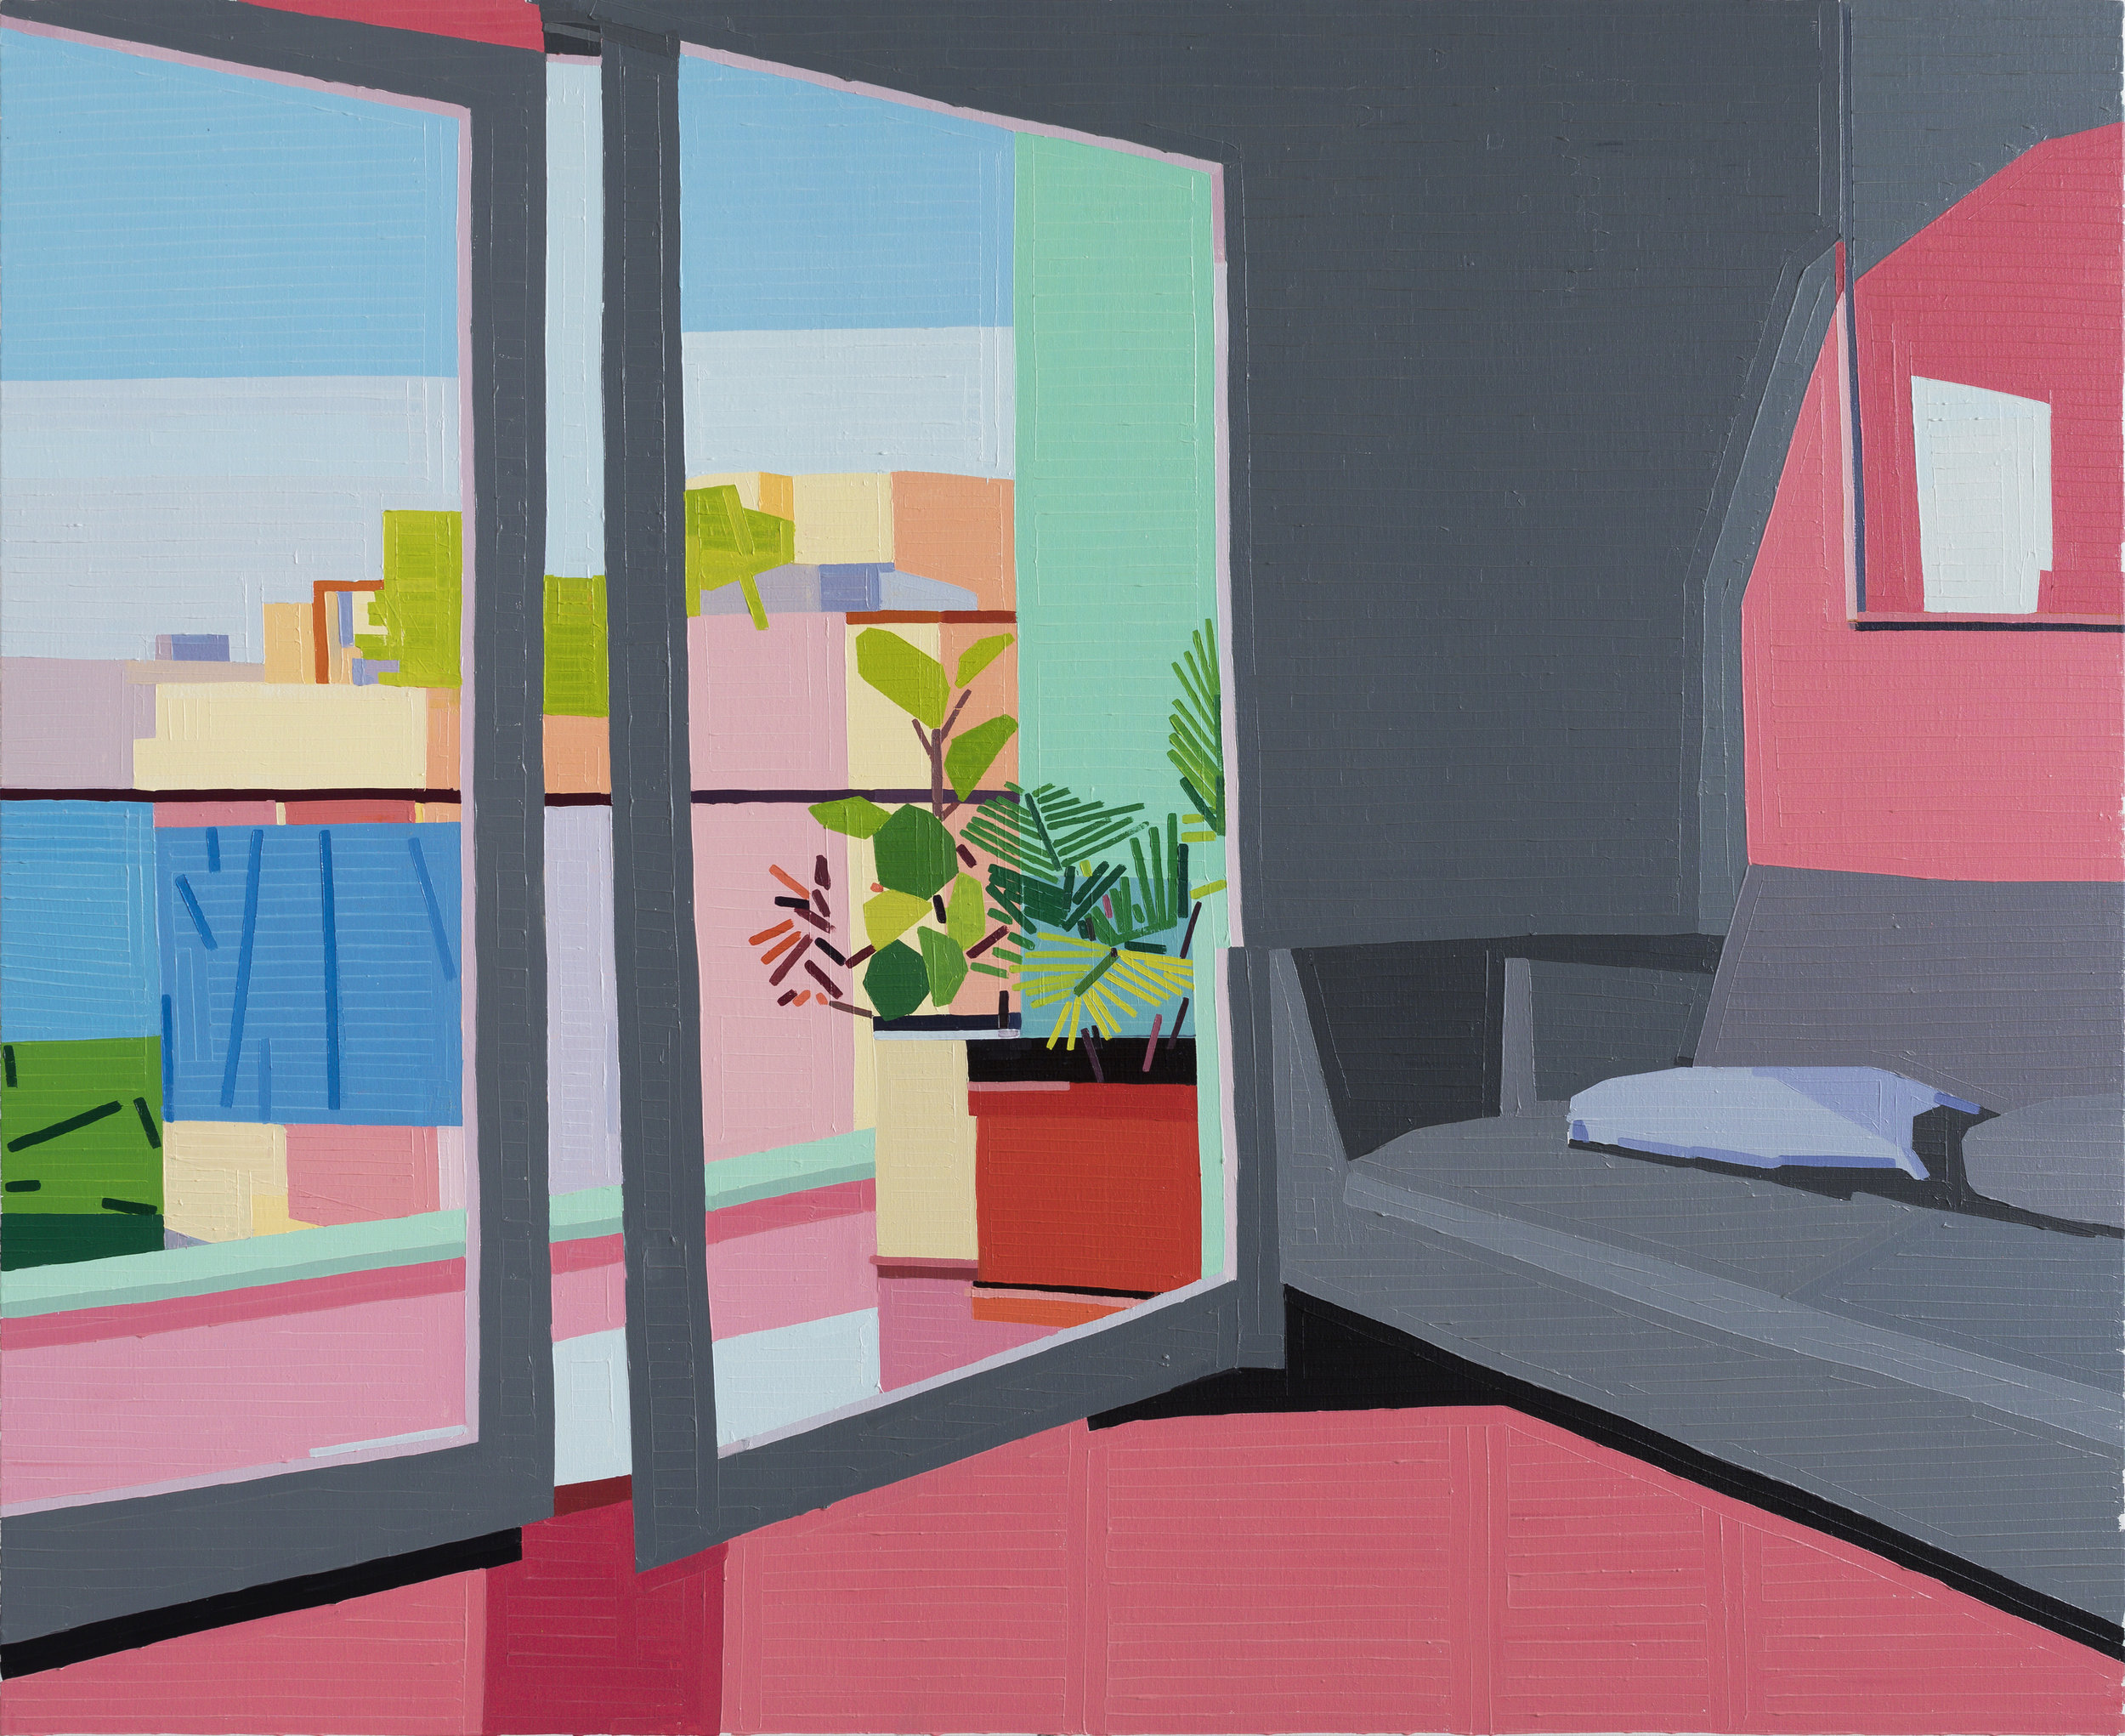 Grey Sofa (Barbarian In The Garden), 2017 oil on linen 150 x 180 cm - 59 1/16 x 70 7/8 inches